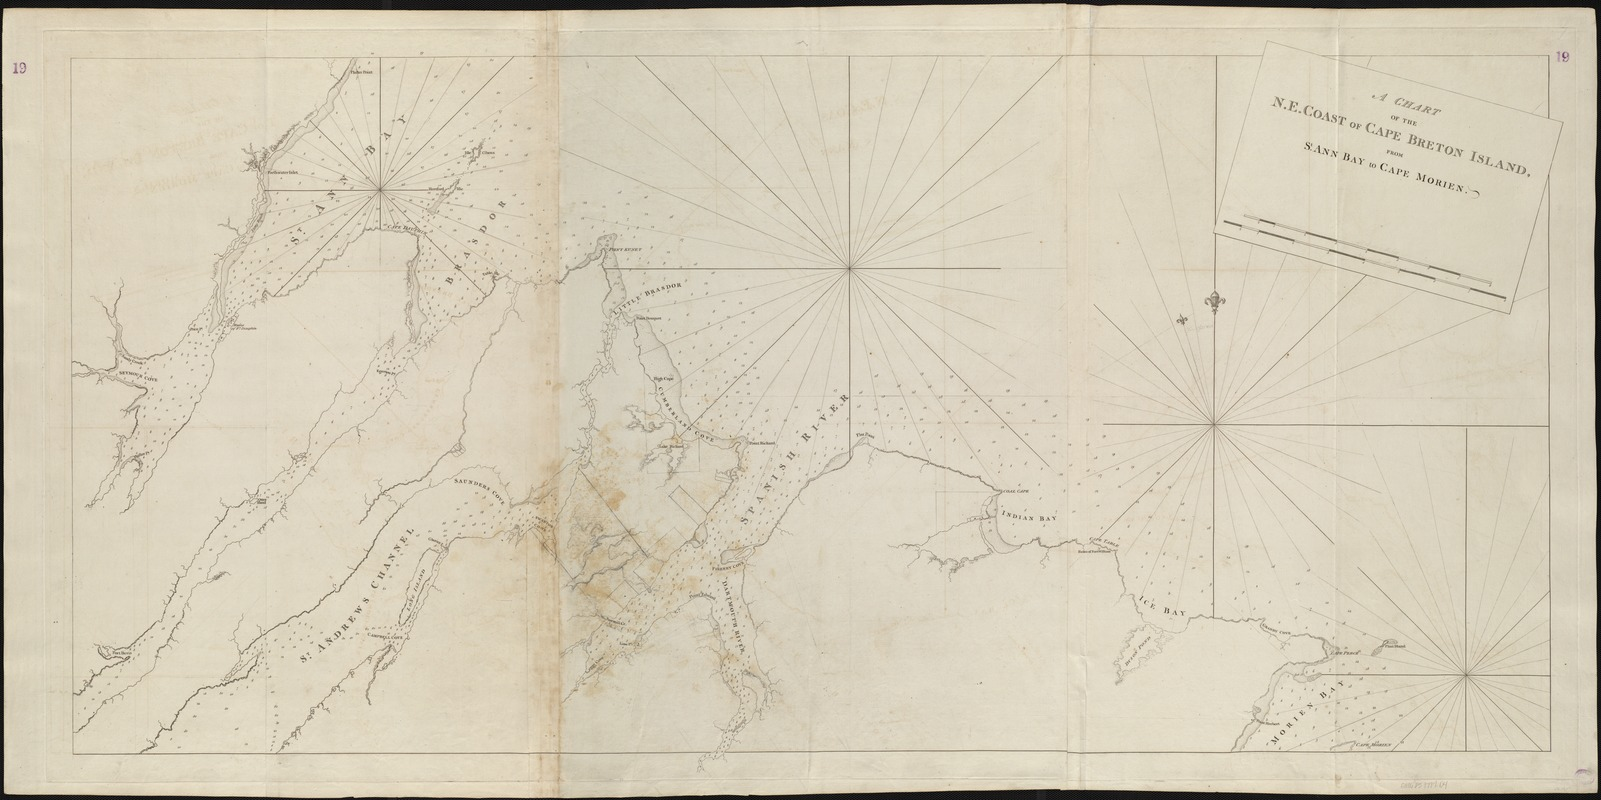 A chart of the N.E. coast of Cape Breton Island, from St. Ann Bay to Cape Morien